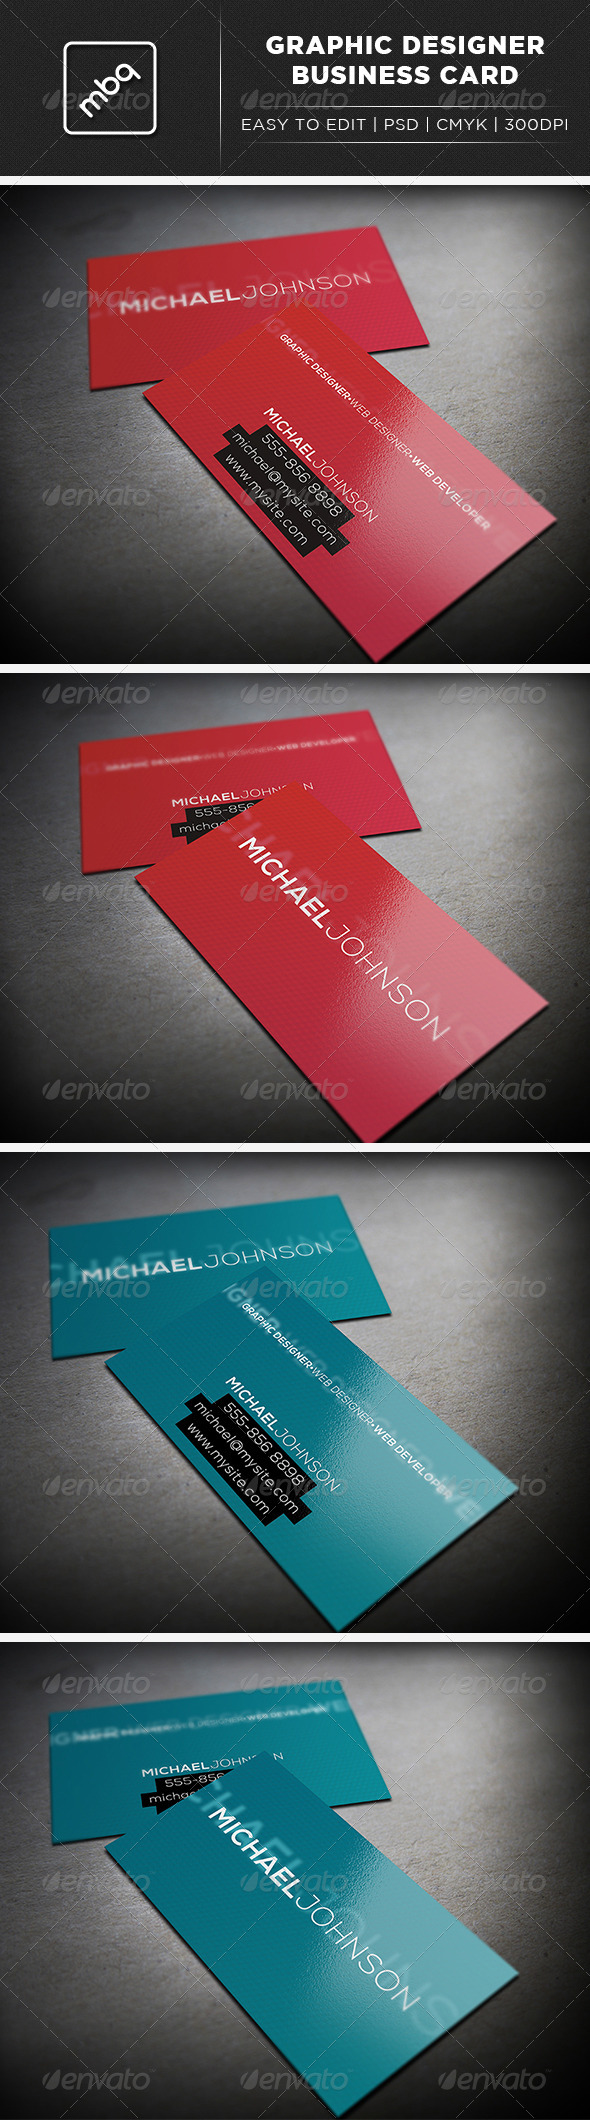 Minimalist Graphic Designer Business Card - Creative Business Cards